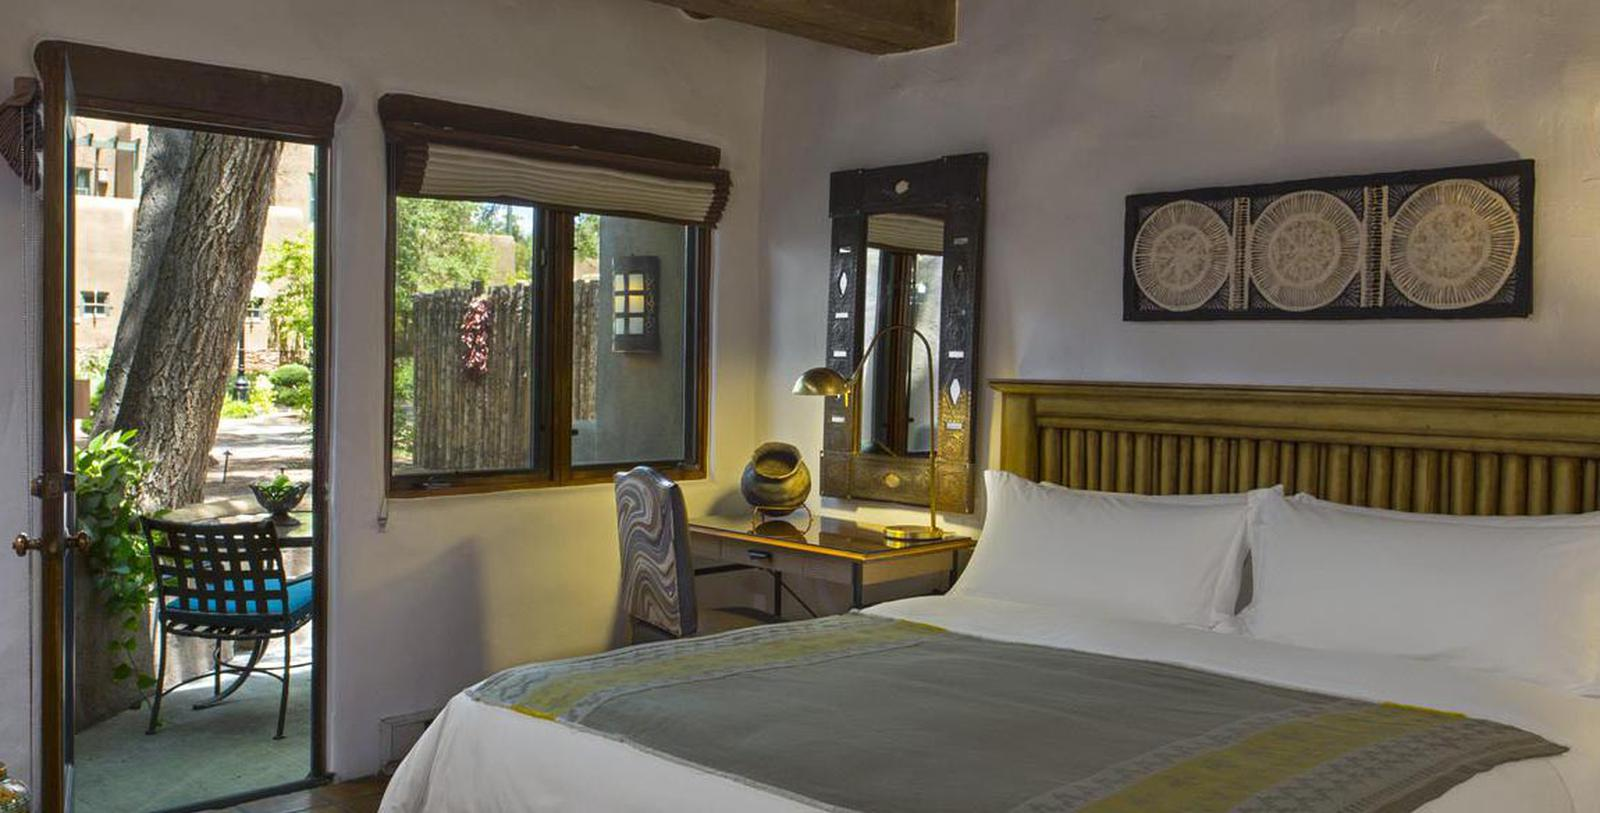 Image of Guestroom La Posada de Santa Fe, A Tribute Portfolio Resort & Spa, 1882, Member of Historic Hotels of America, Santa Fe, New Mexico, Accommodations